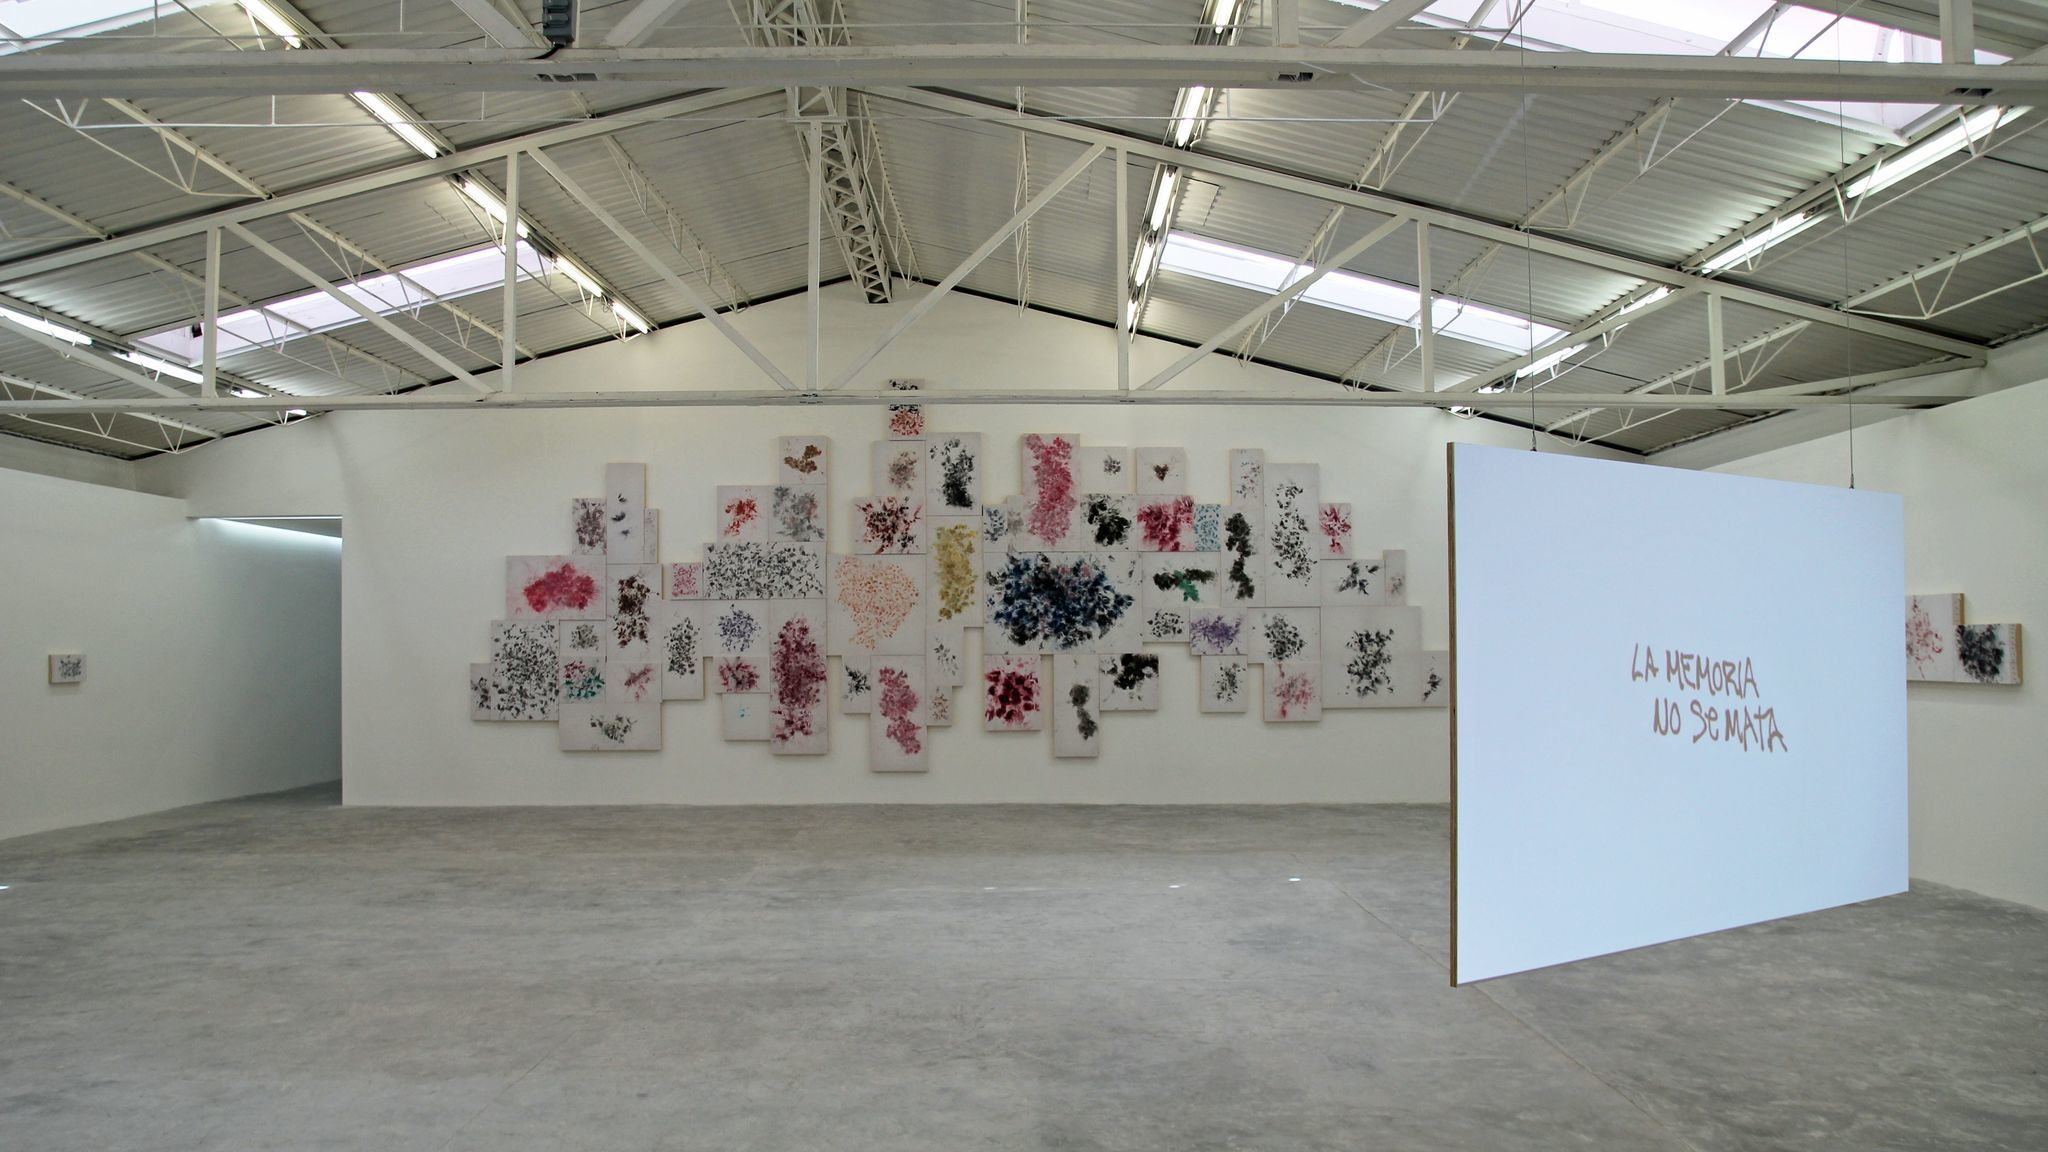 An installation view of work by Tercerunquinto at Proyectos Monclova, in Mexico City. The work reflects on graffiti painted in the wake of the disappearance of 43 students in Ayotzinapa.